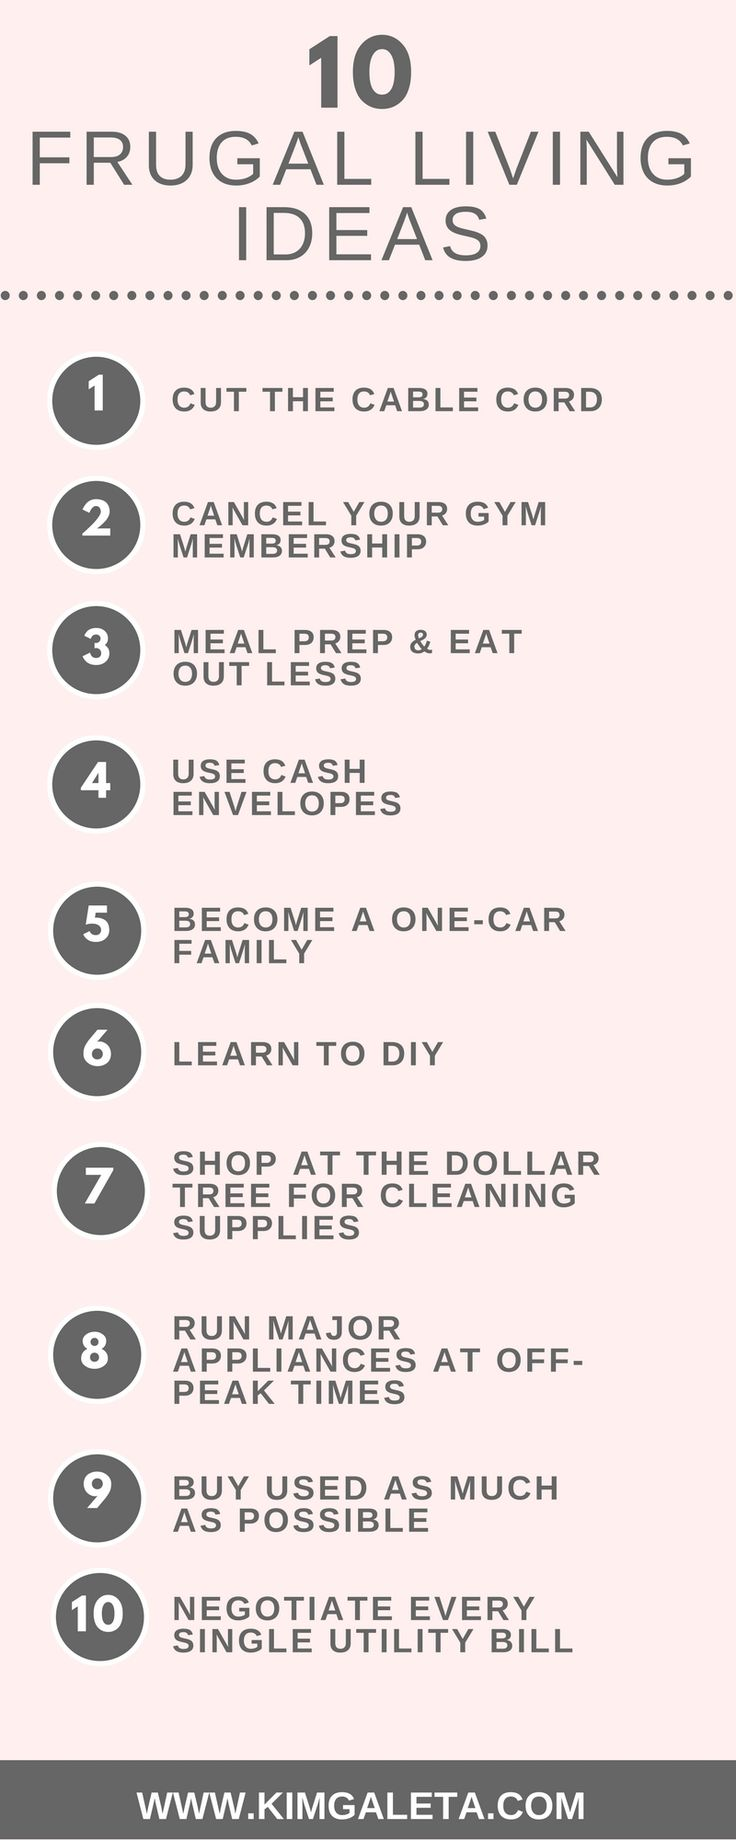 Need frugal living ideas? These 10 frugal living ideas are easy to follow and can save you hundreds each month. Click through for even more frugal living ideas.